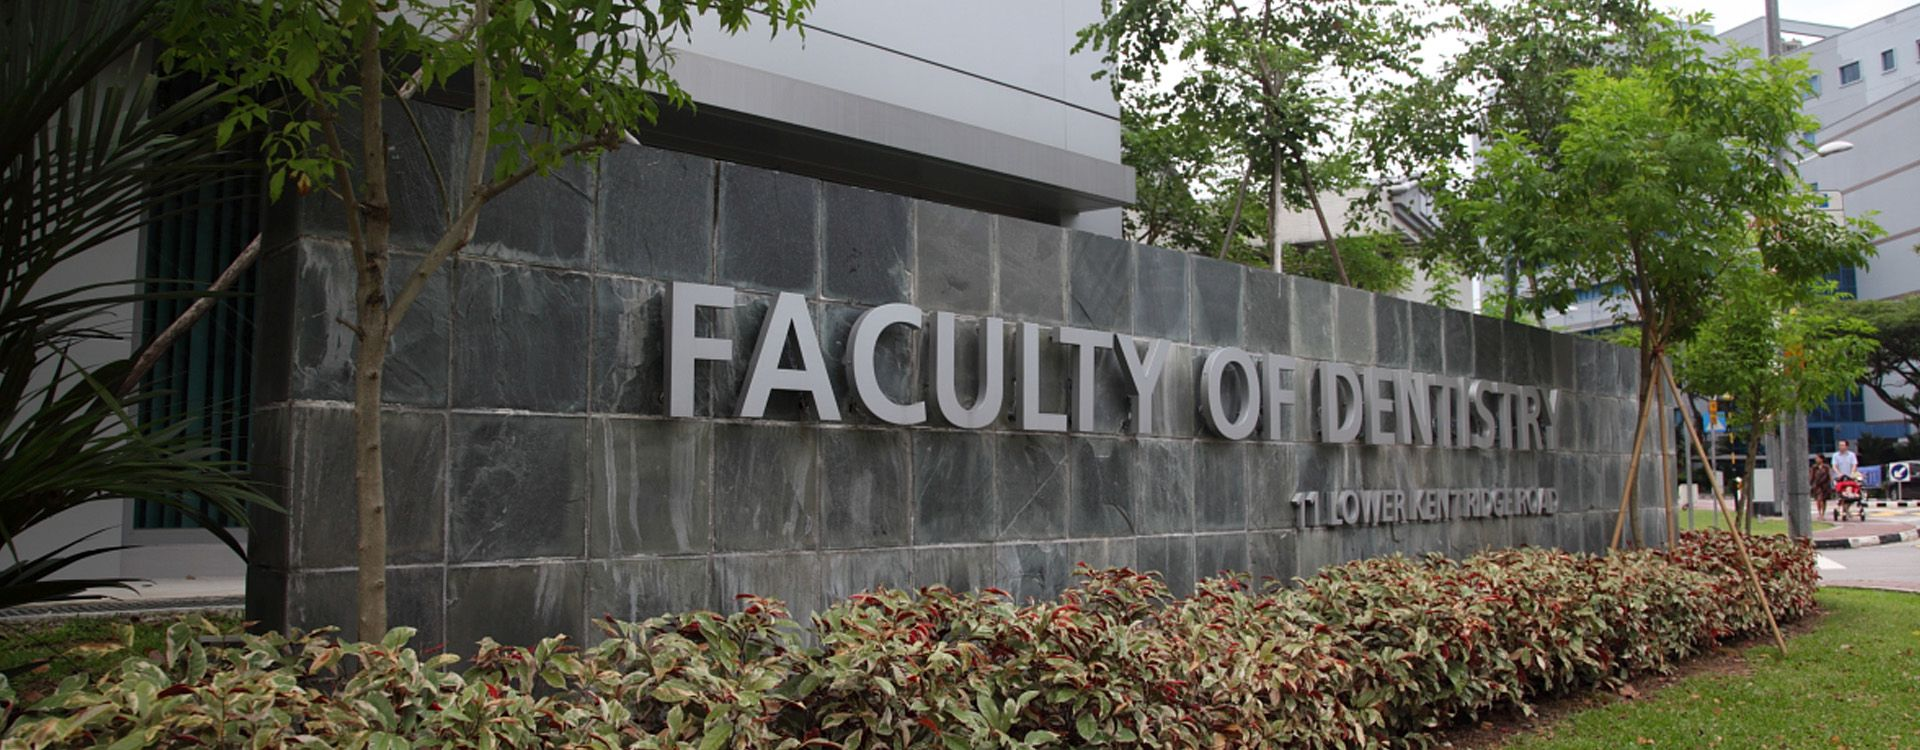 bnr-sg faculty of dentistry